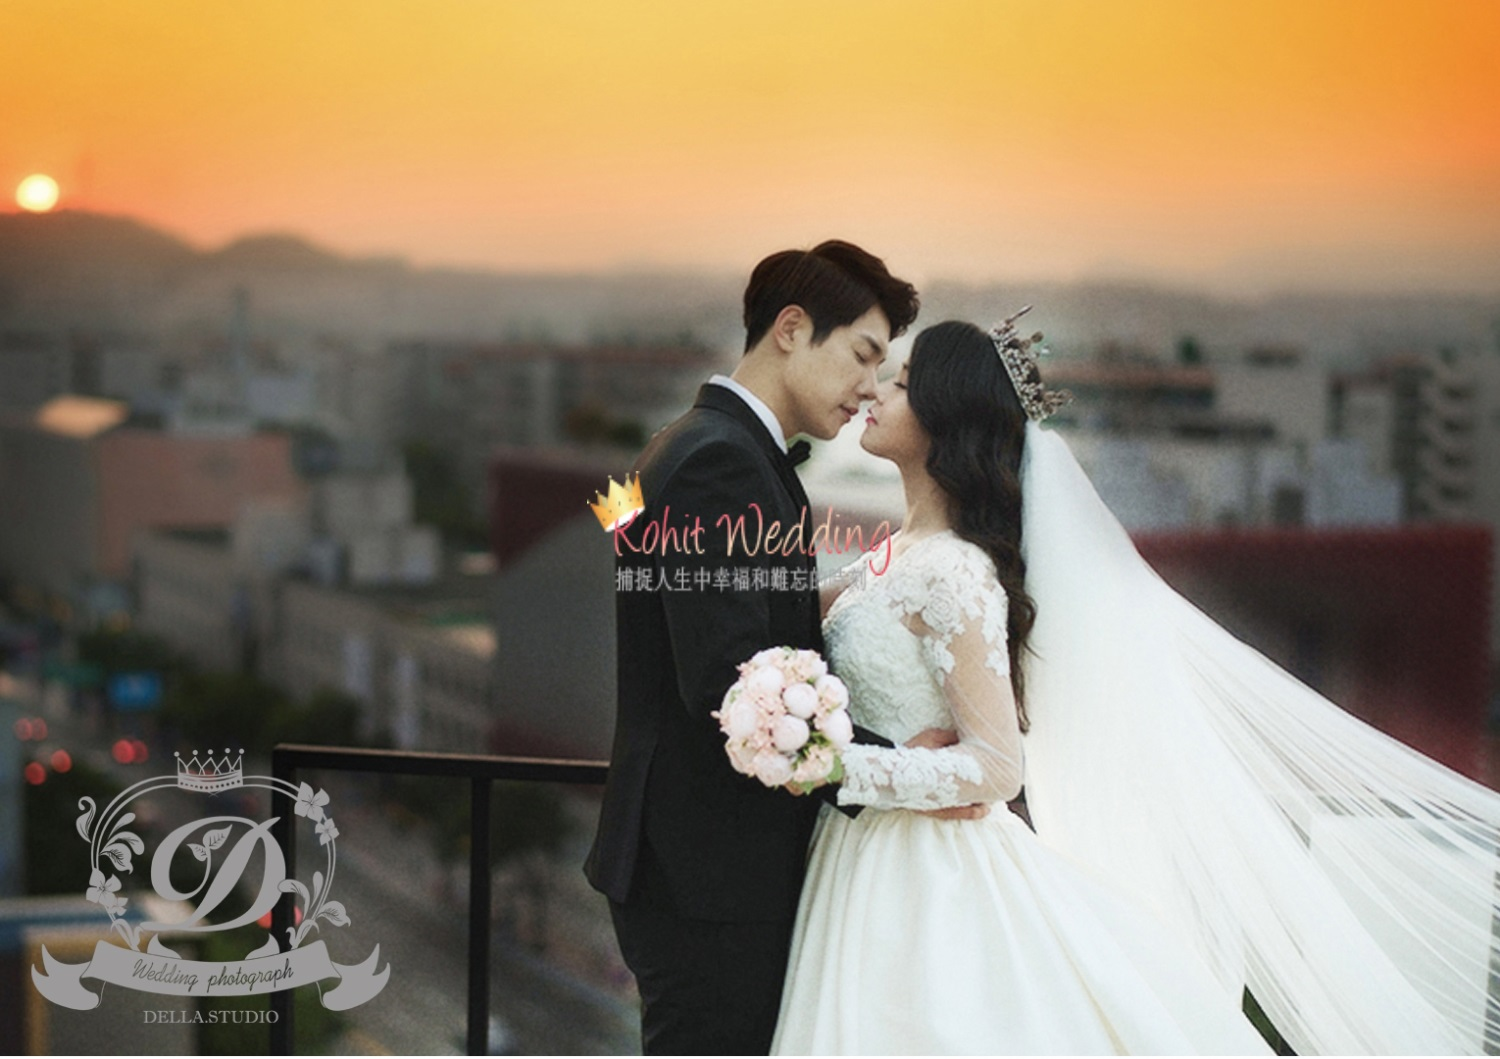 Korea Pre Wedding Kohit Wedding 13